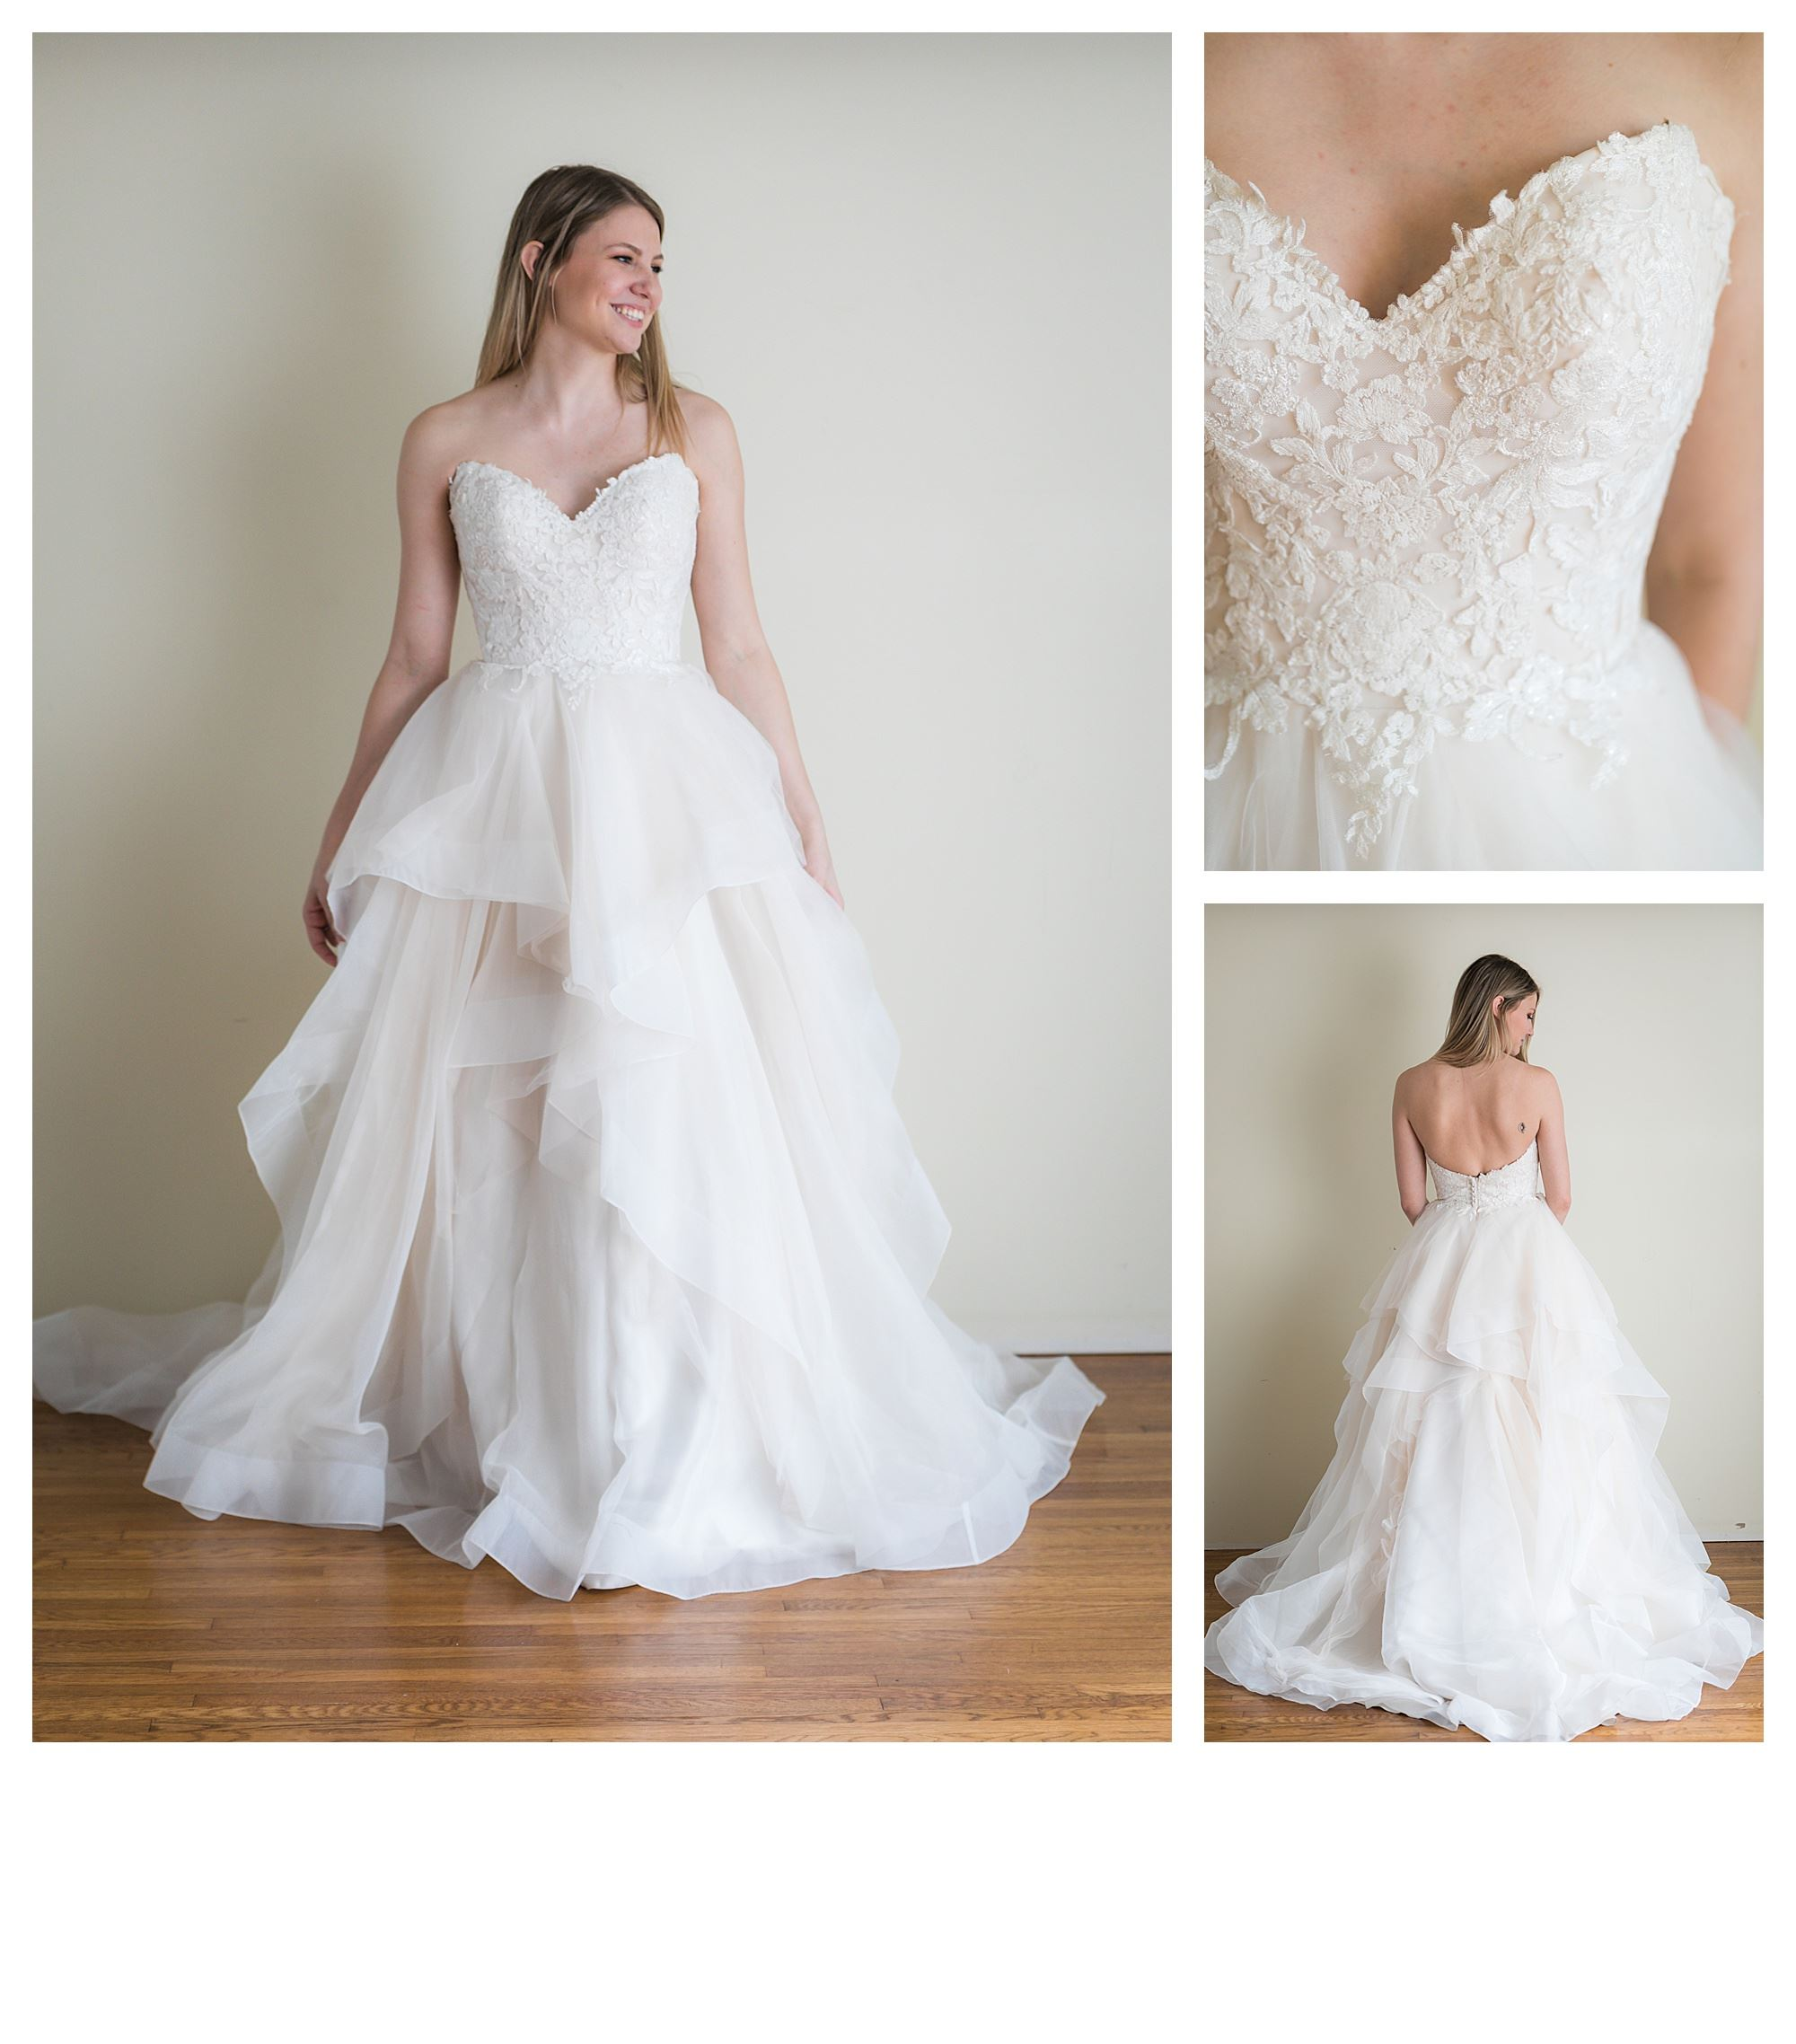 Sofie - Size 8 -Sand/Ivory - Originally priced $1299 - Sample box price $899